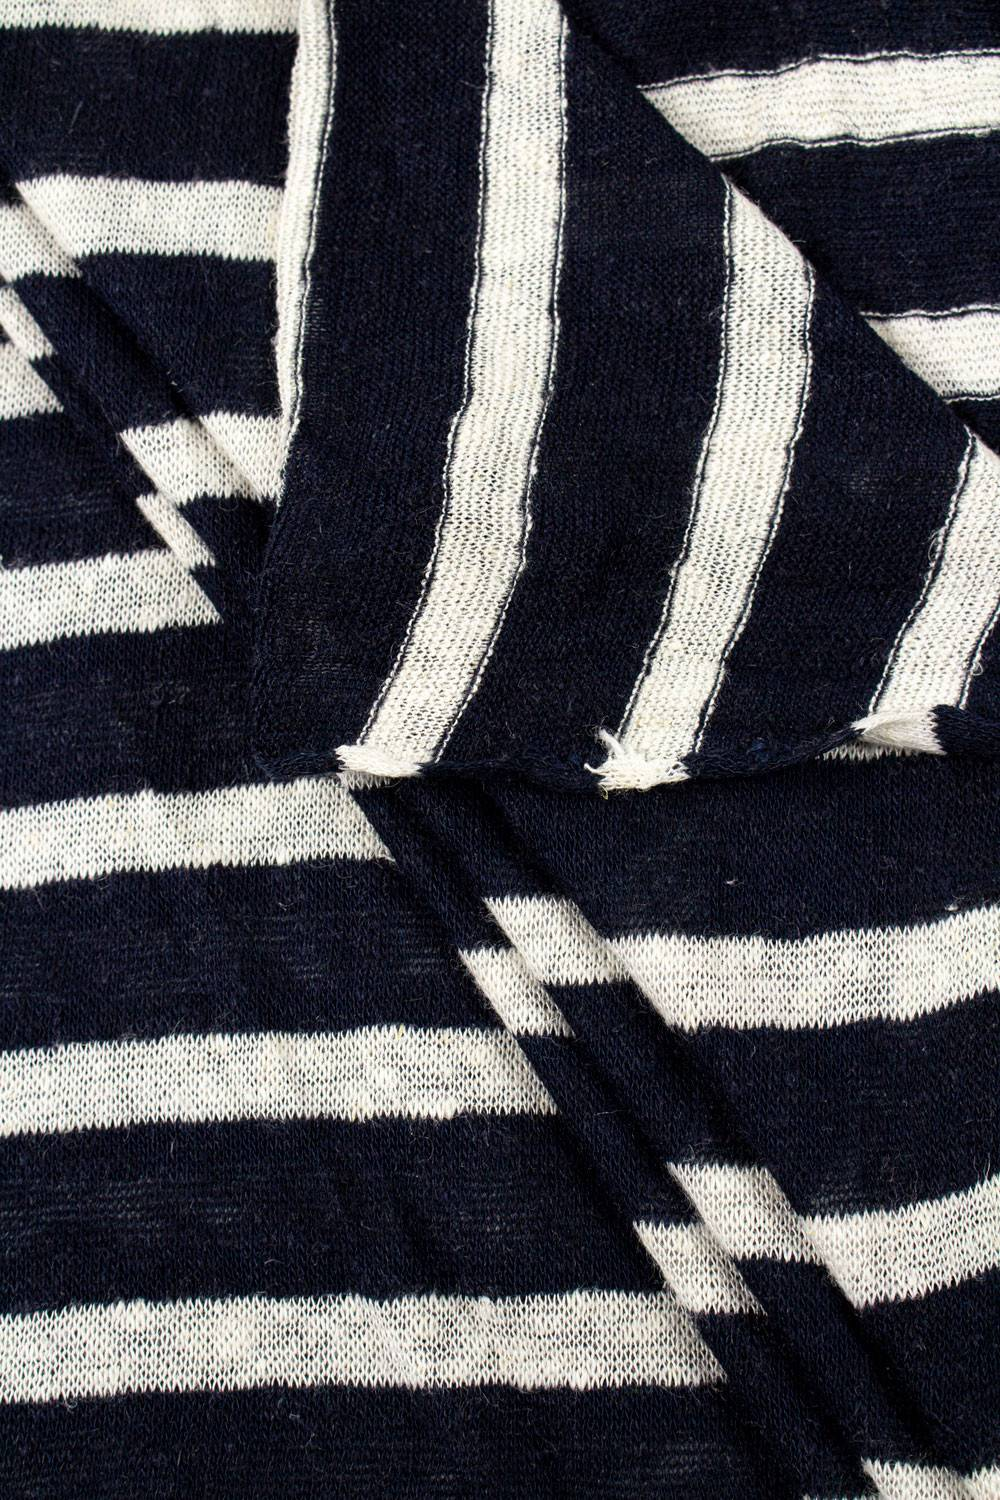 Knit - Sweater Type - Black & White Stripes - 155 cm - 170 g/m2